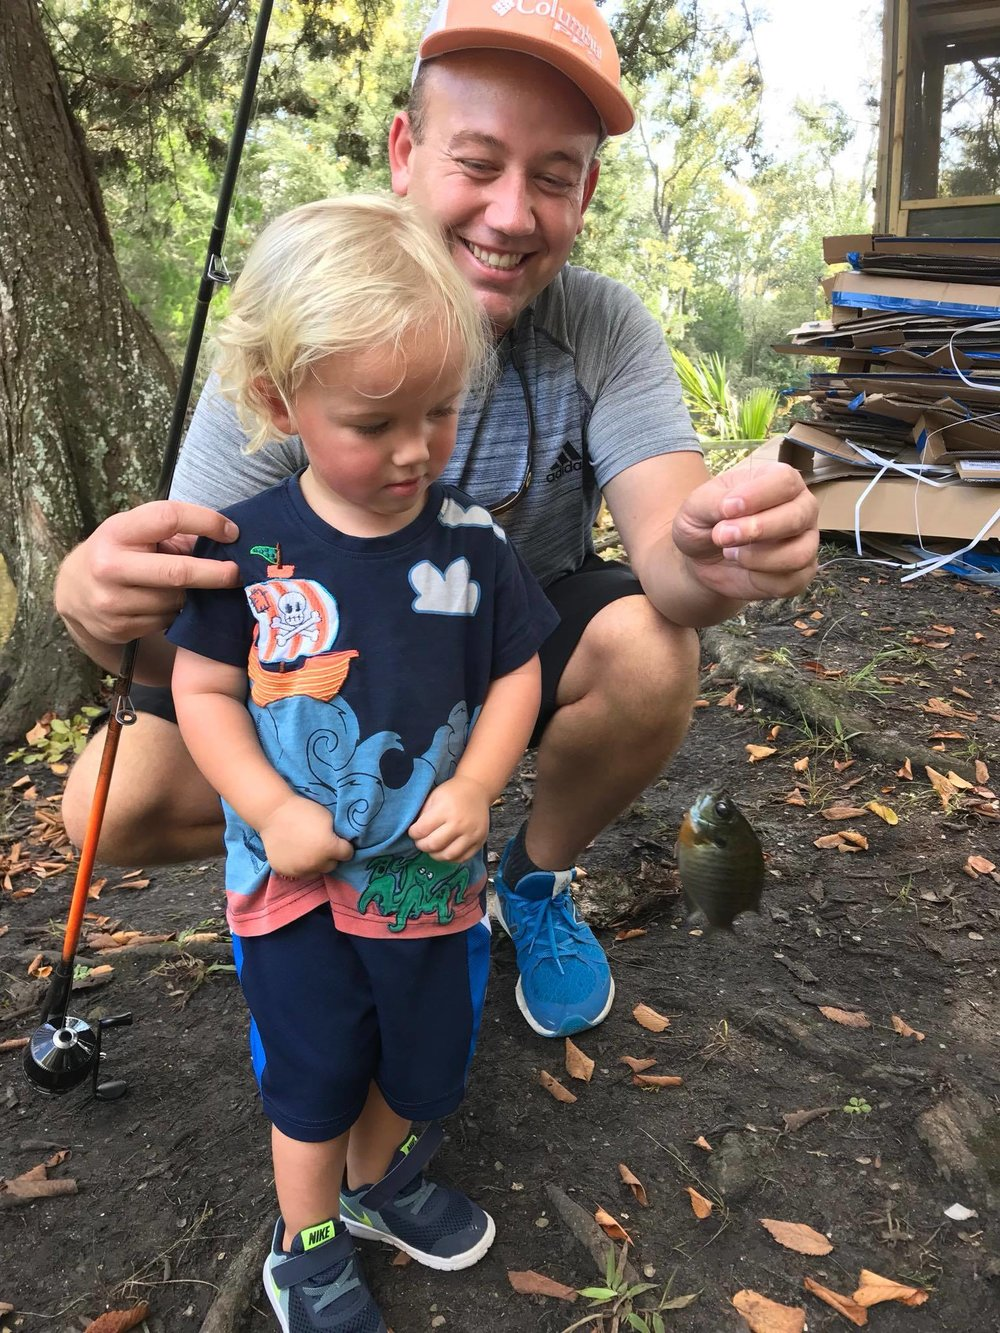 At just 2 years old, Bishop Moore of Freeport hooked this fish from Black Creek on Oct. 14. He got a little assistance from his father, Myron.